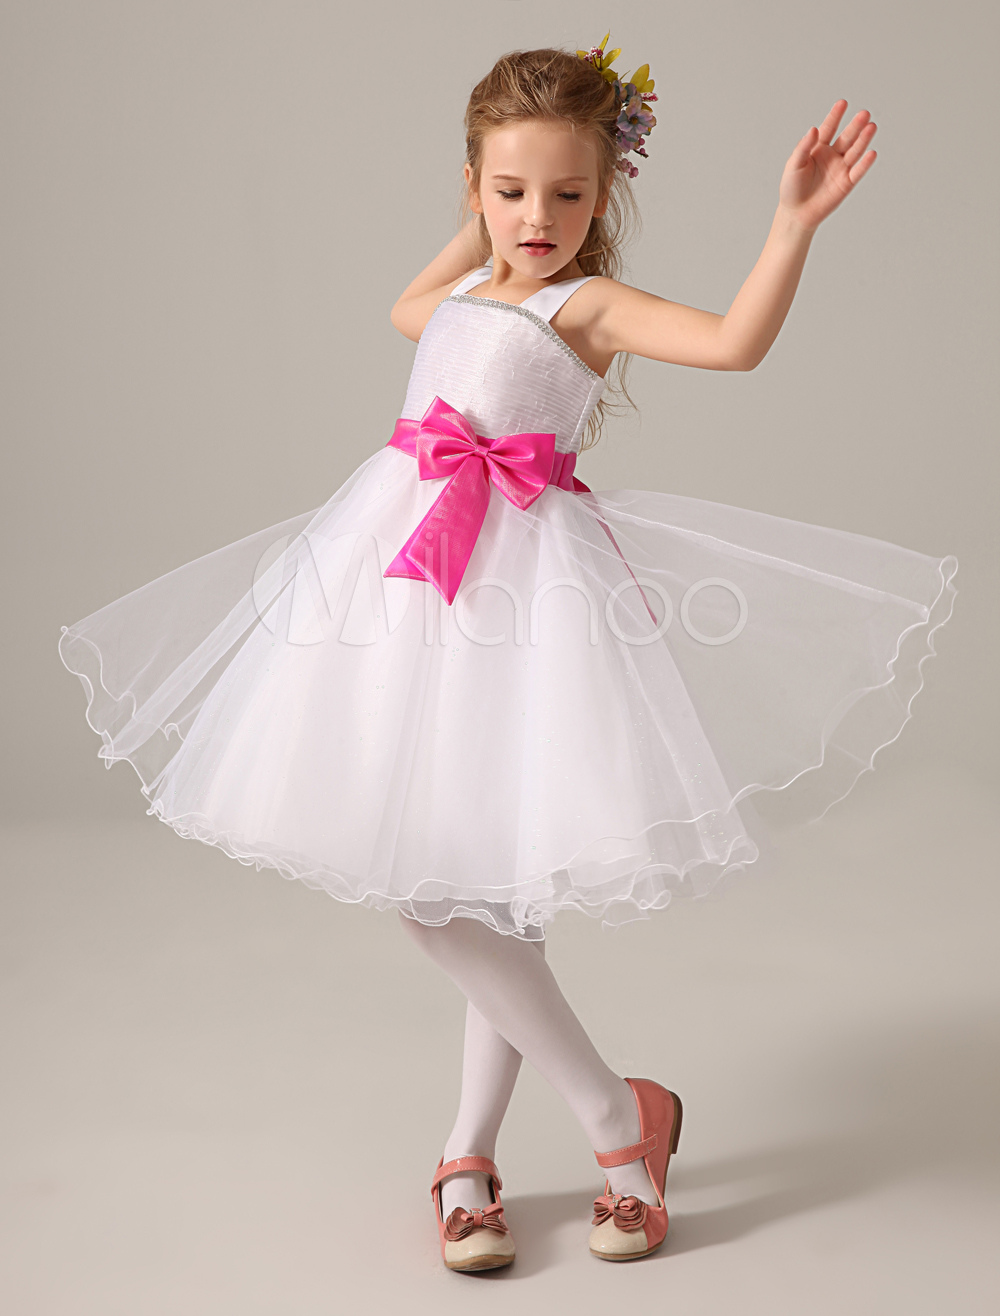 Buy White Bateau Neck Knee-Length Bow Tulle Wedding Flower Girl Dress for $58.89 in Milanoo store